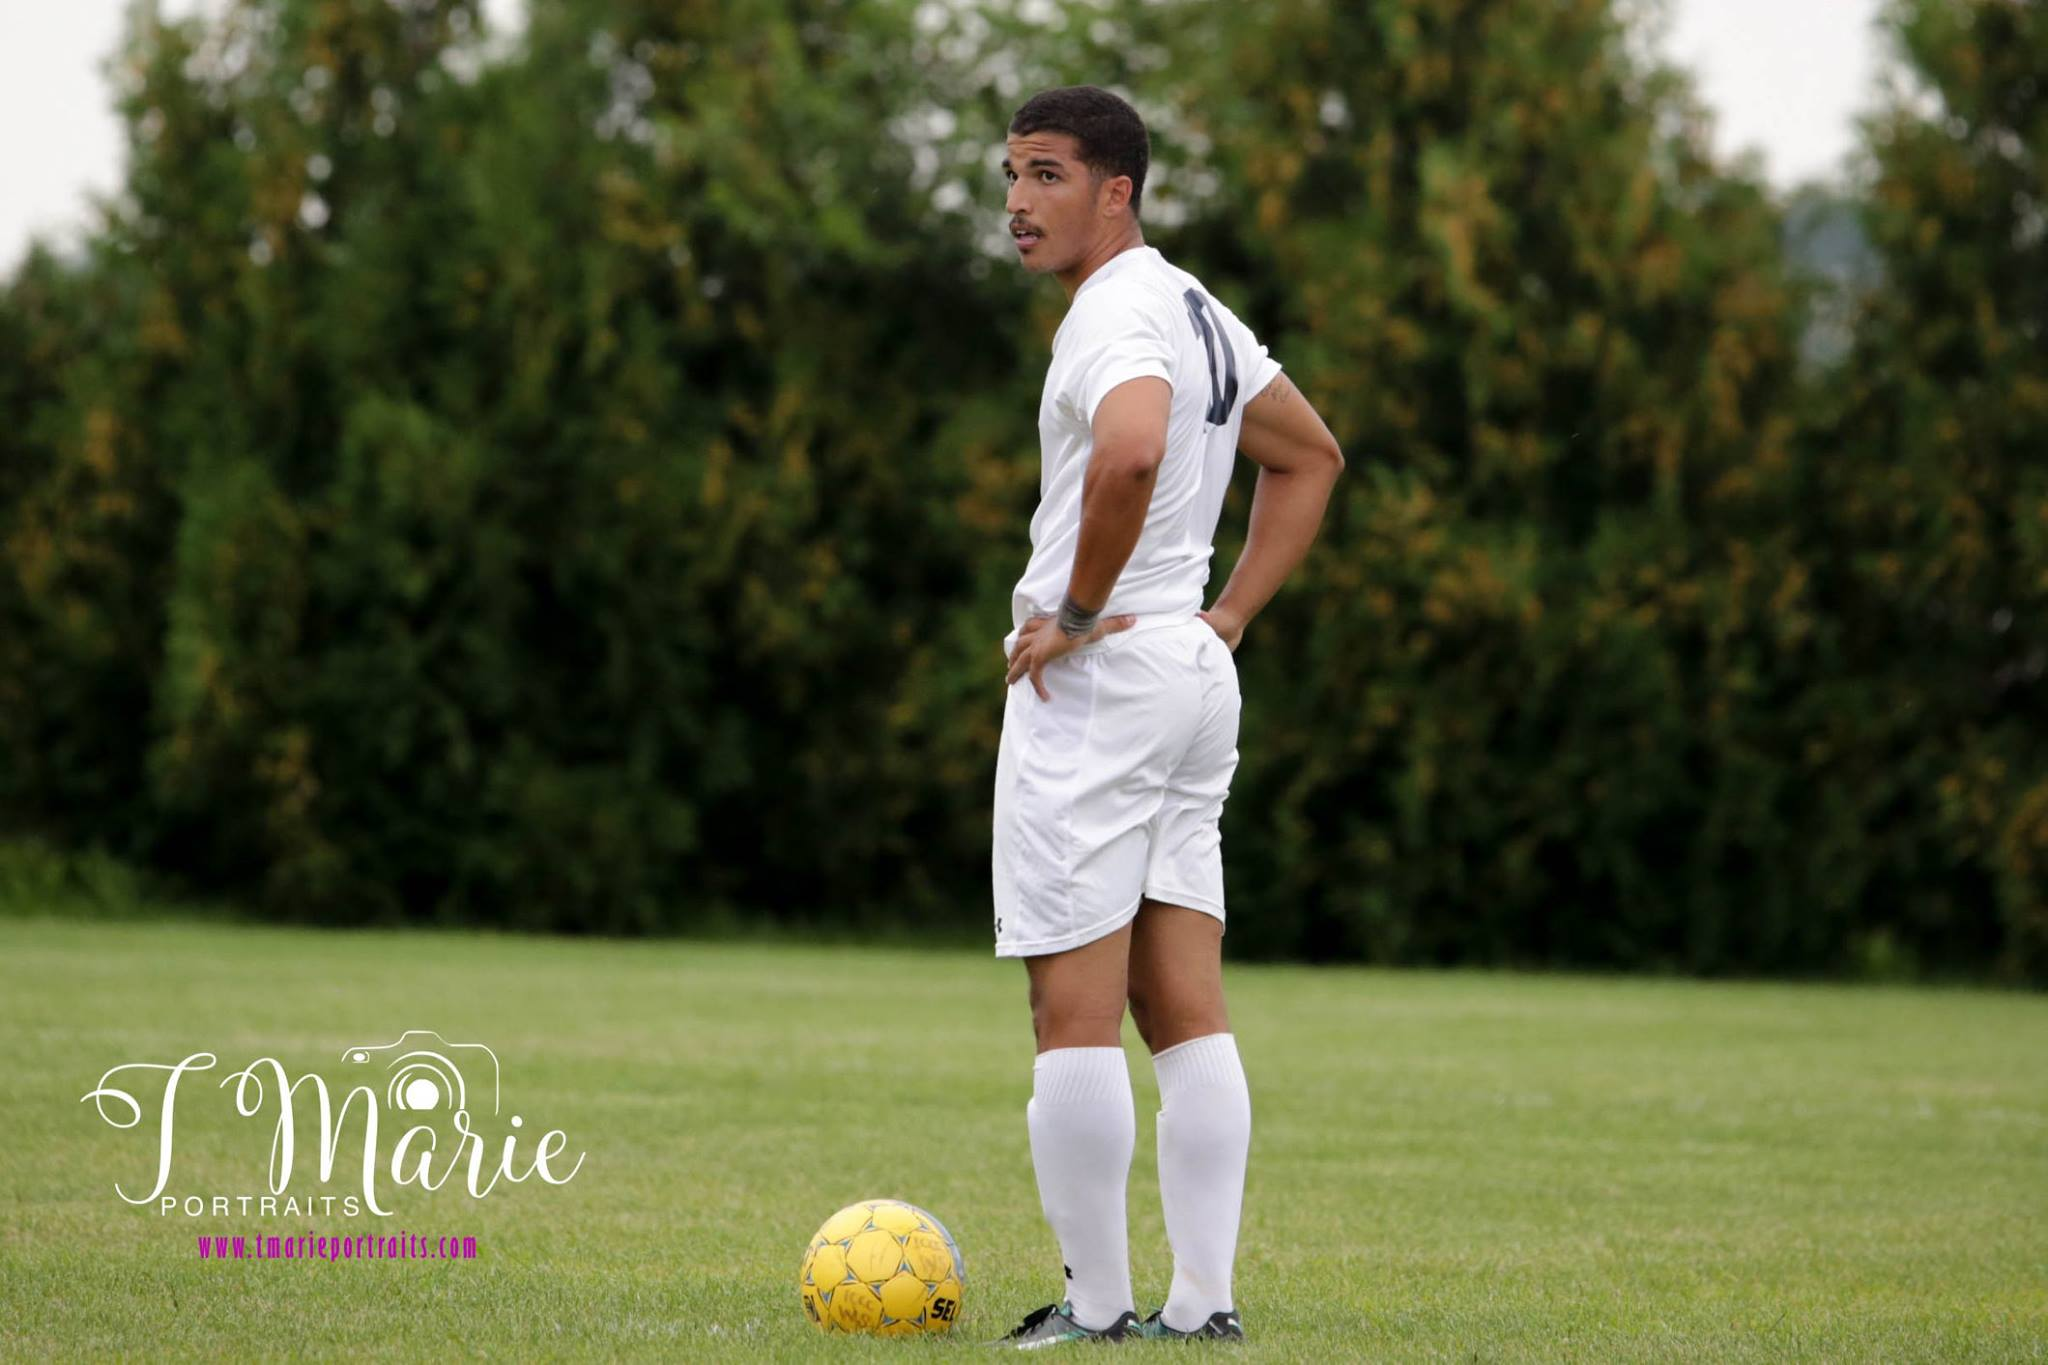 Henrique Devens - Men's Soccer